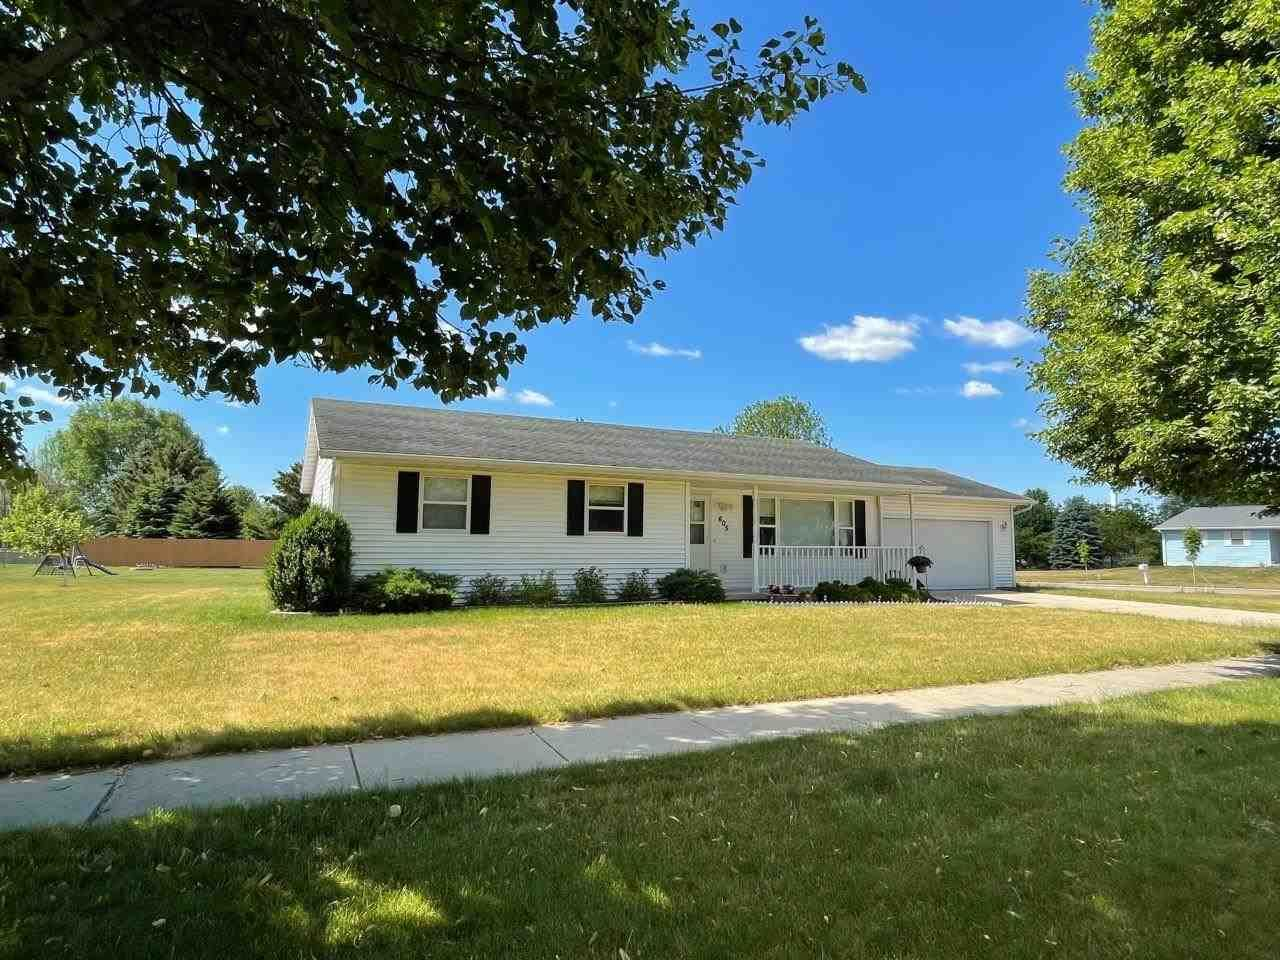 605 E Countryside Dr, Evansville, WI 53536 - #: 1912741